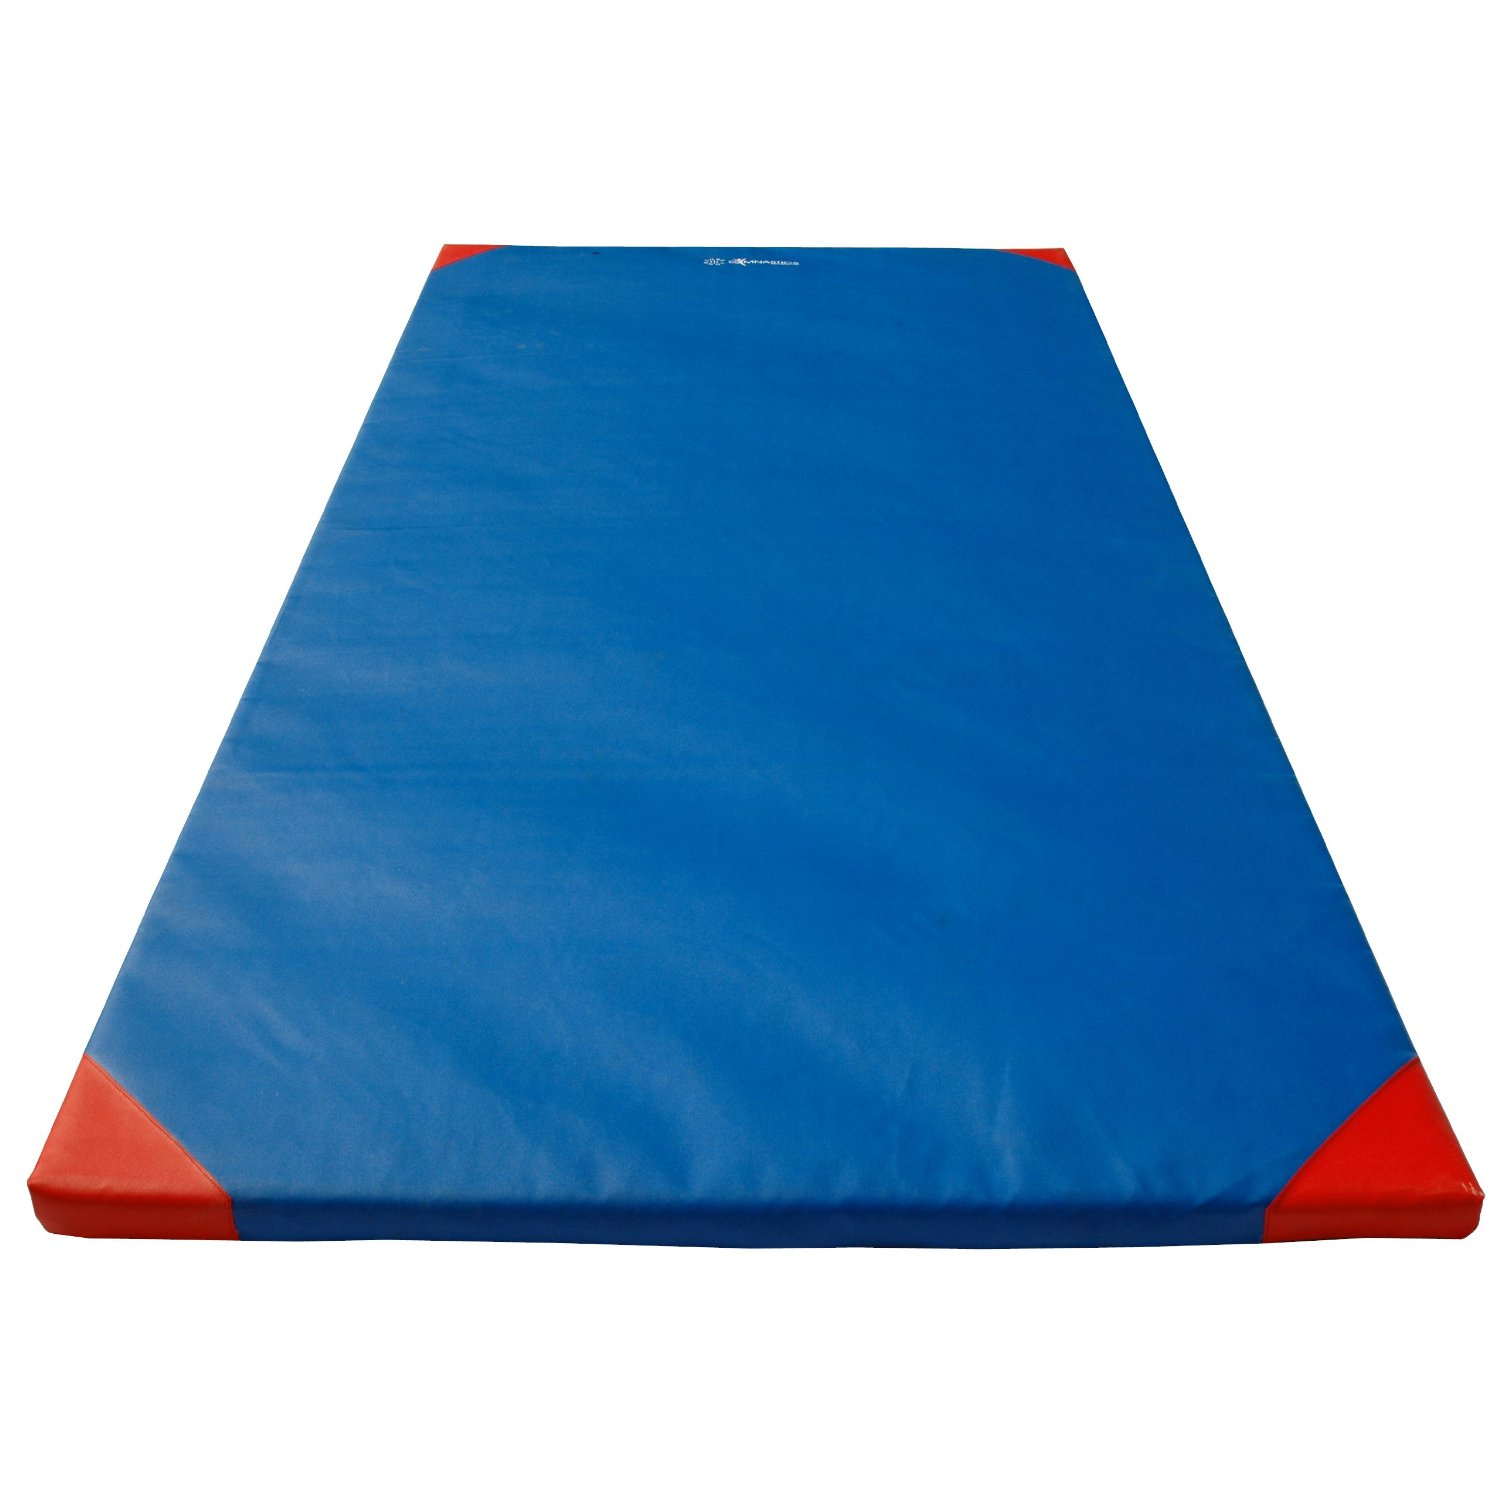 Sure Shot Lightweight Mats Gymnastics Anti-Slip School